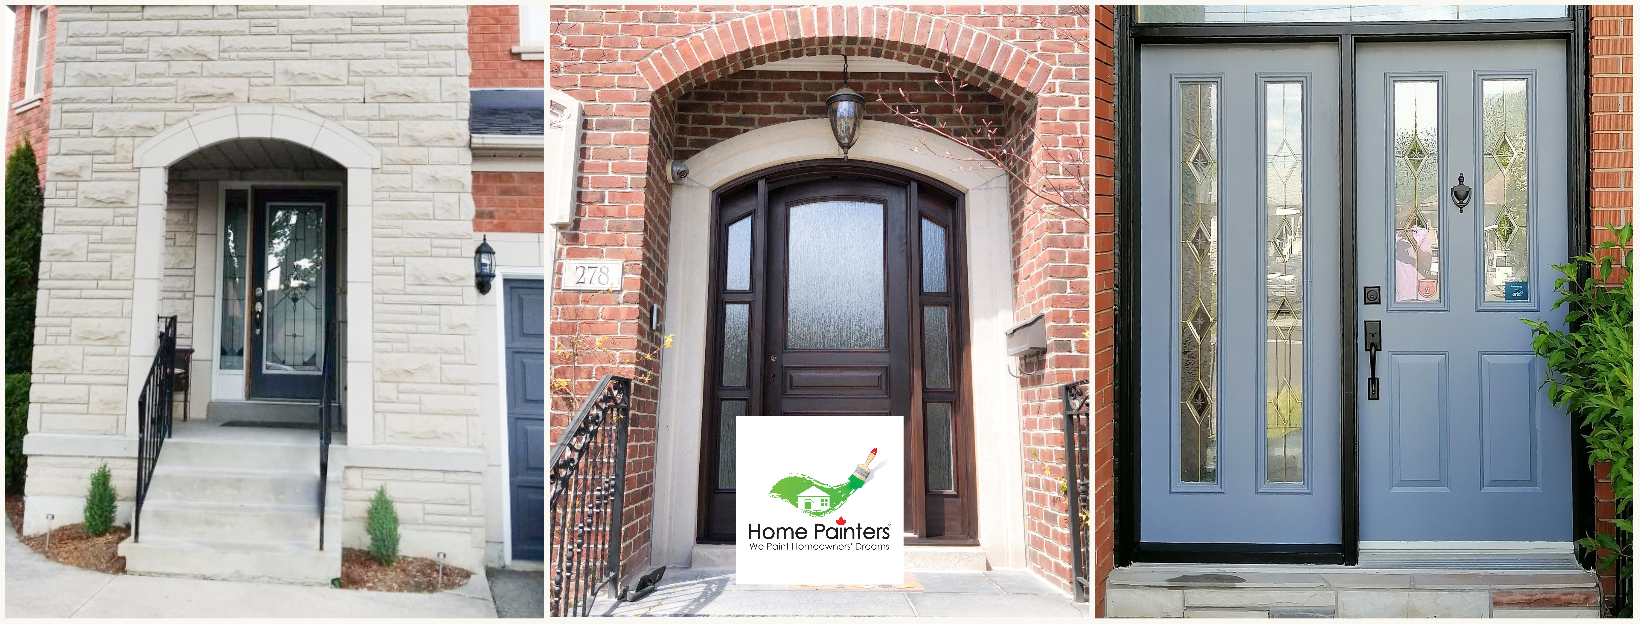 How To Paint A Front Door Without Removing It Home Painters Toronto